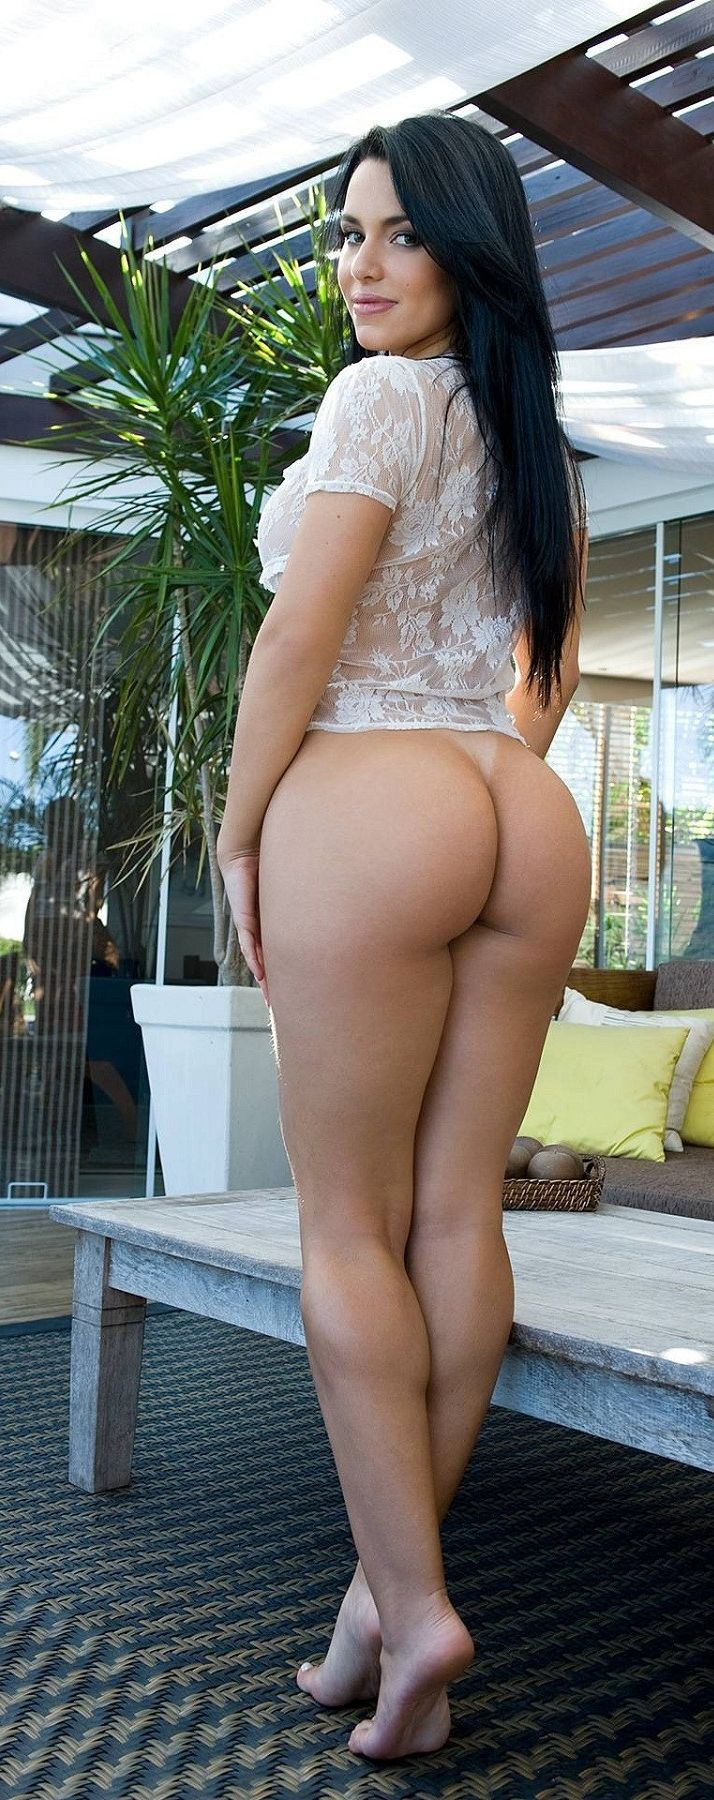 Pantyhose ladies with big butts naked taking their bikini